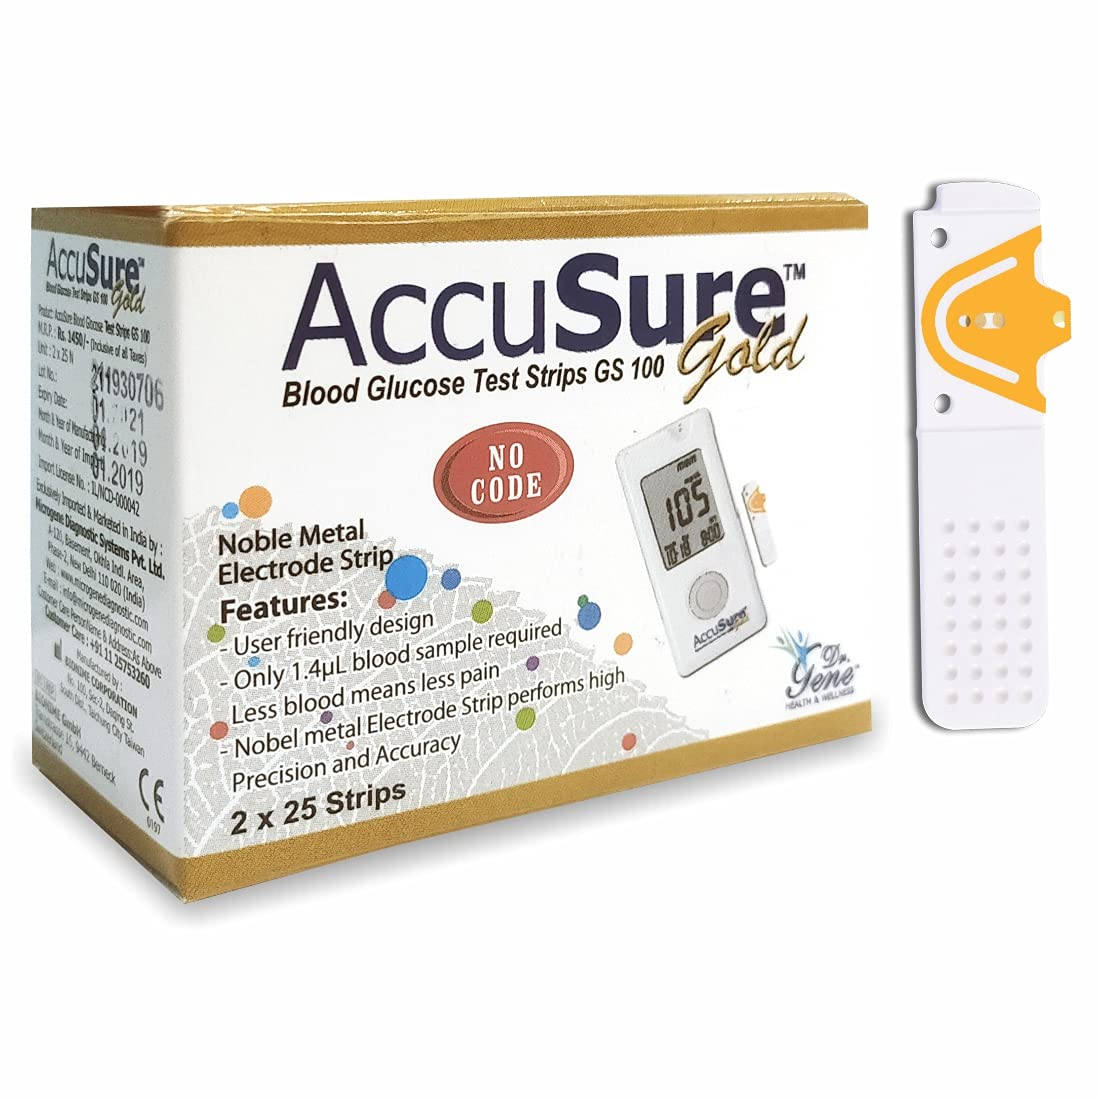 AccuSure Gold Blood Glucose Monitoring Device